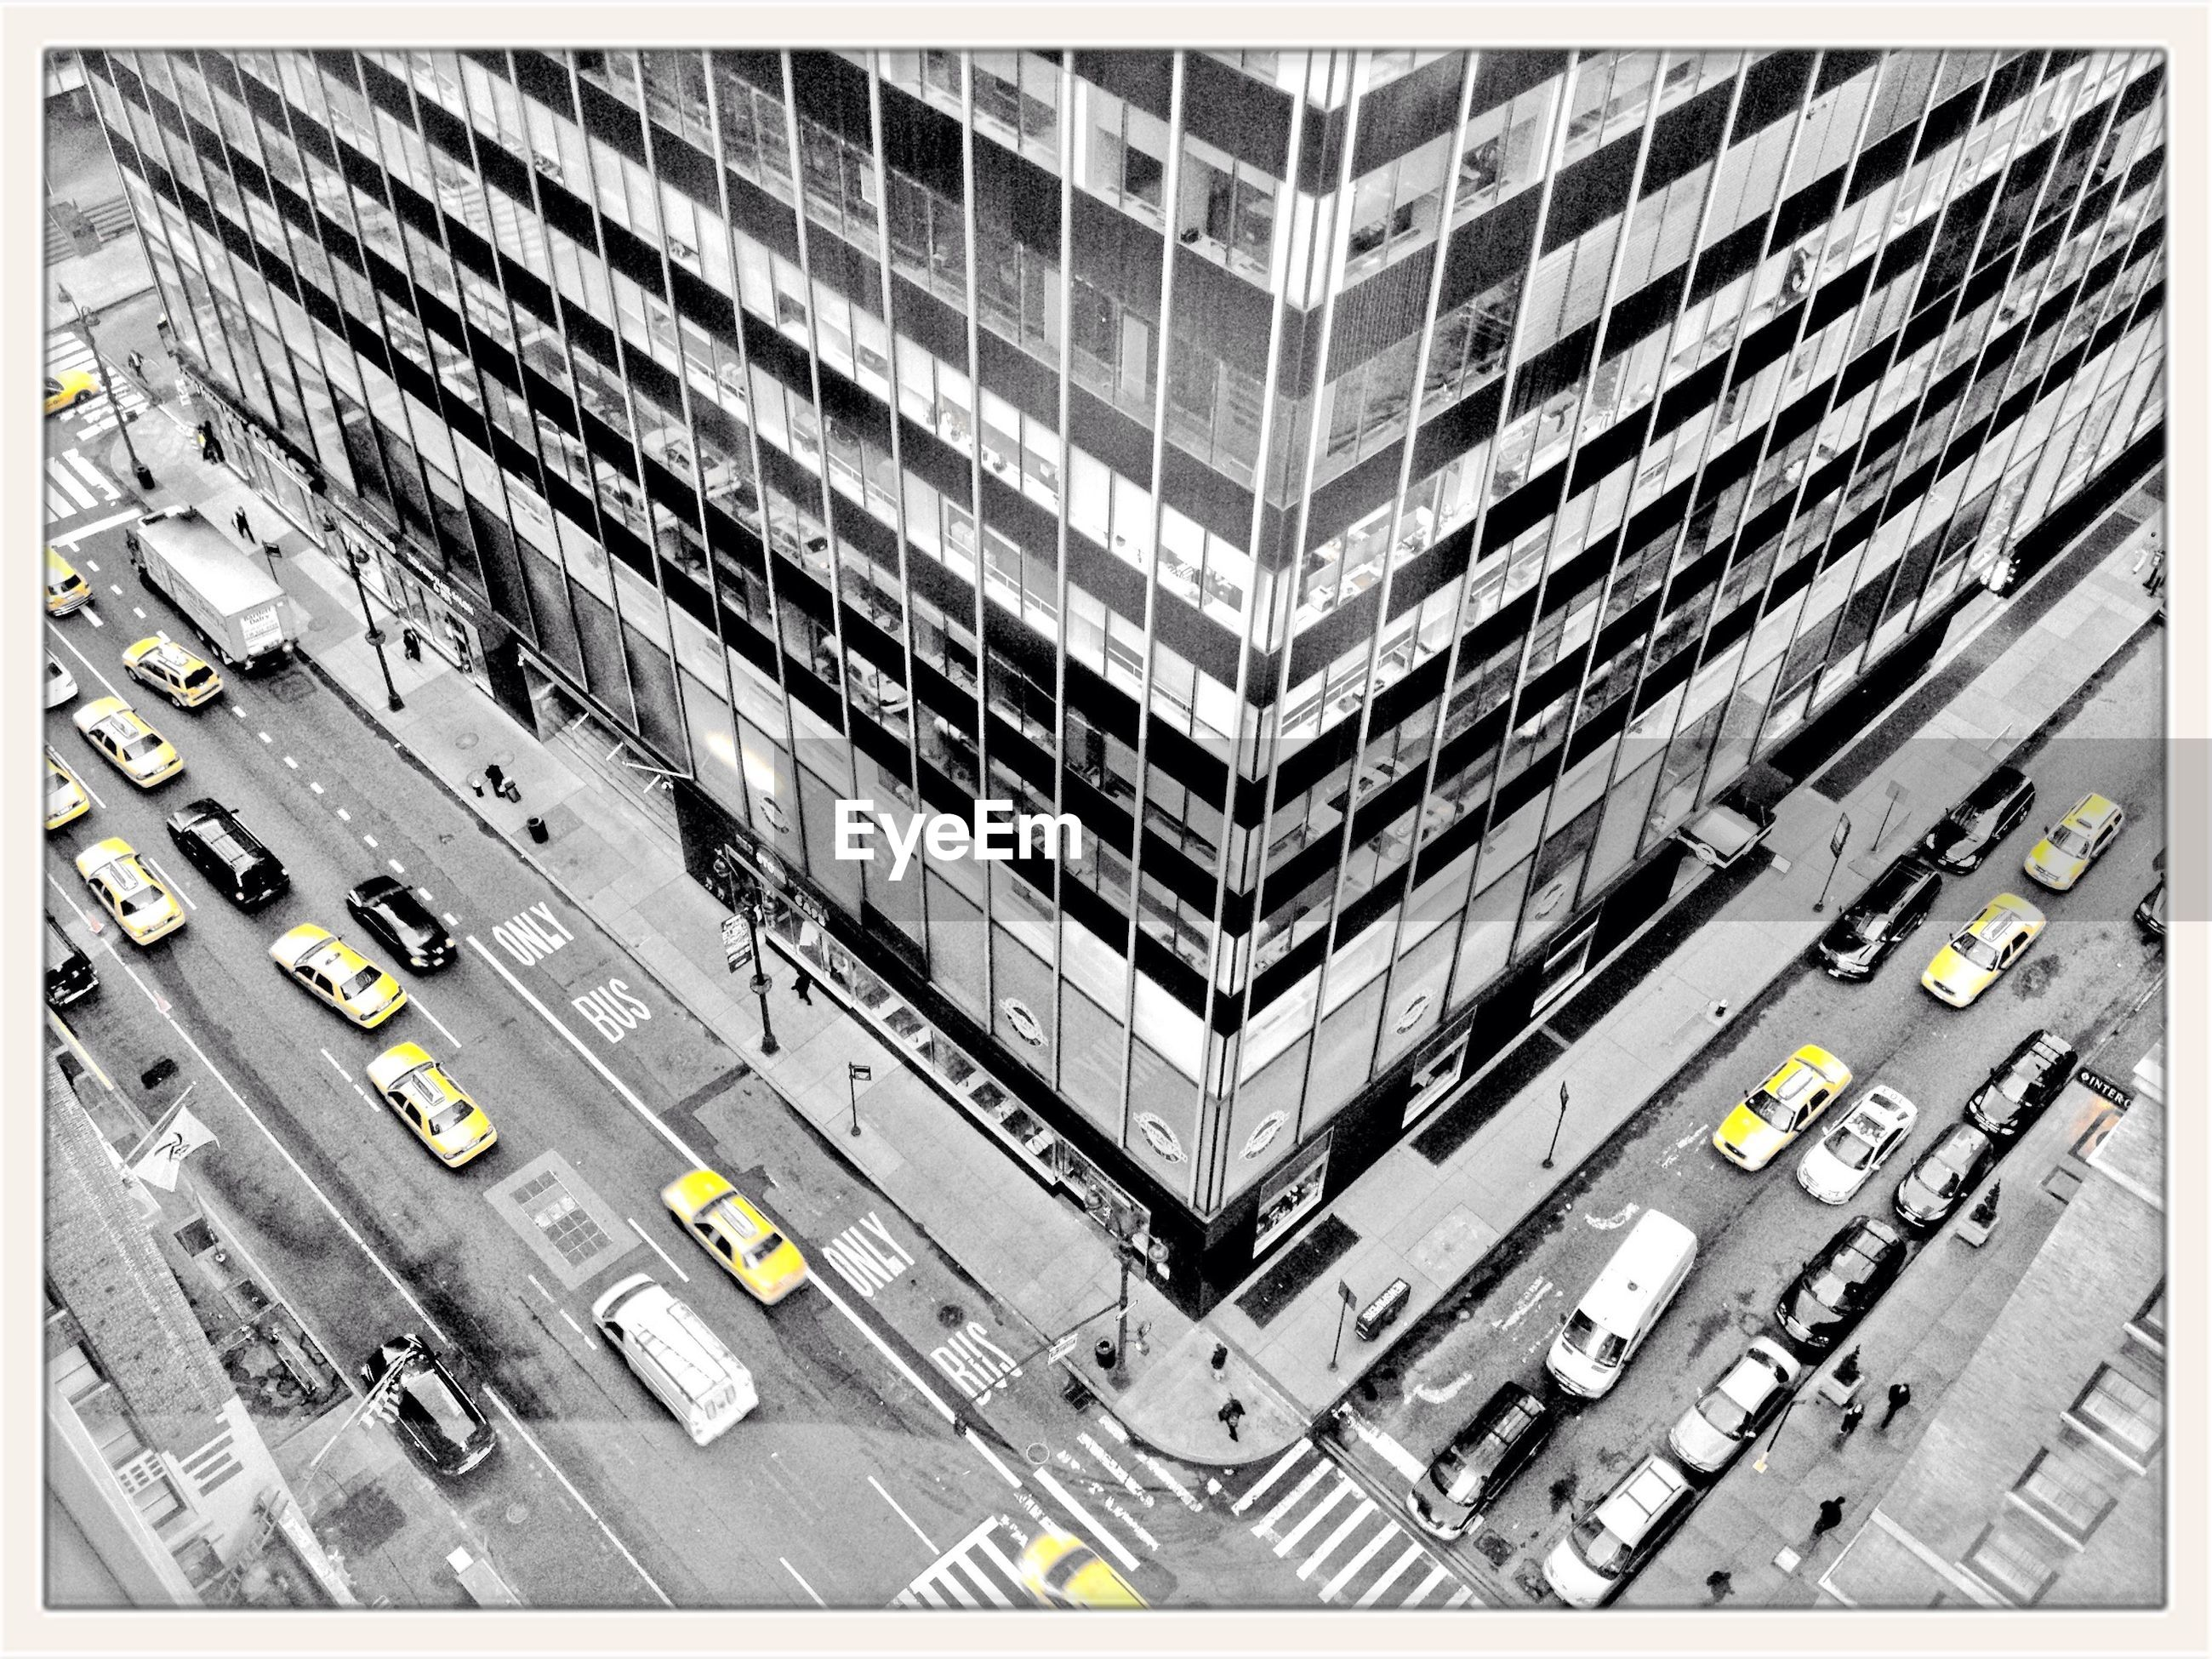 High angle view of cars on city street by glass building